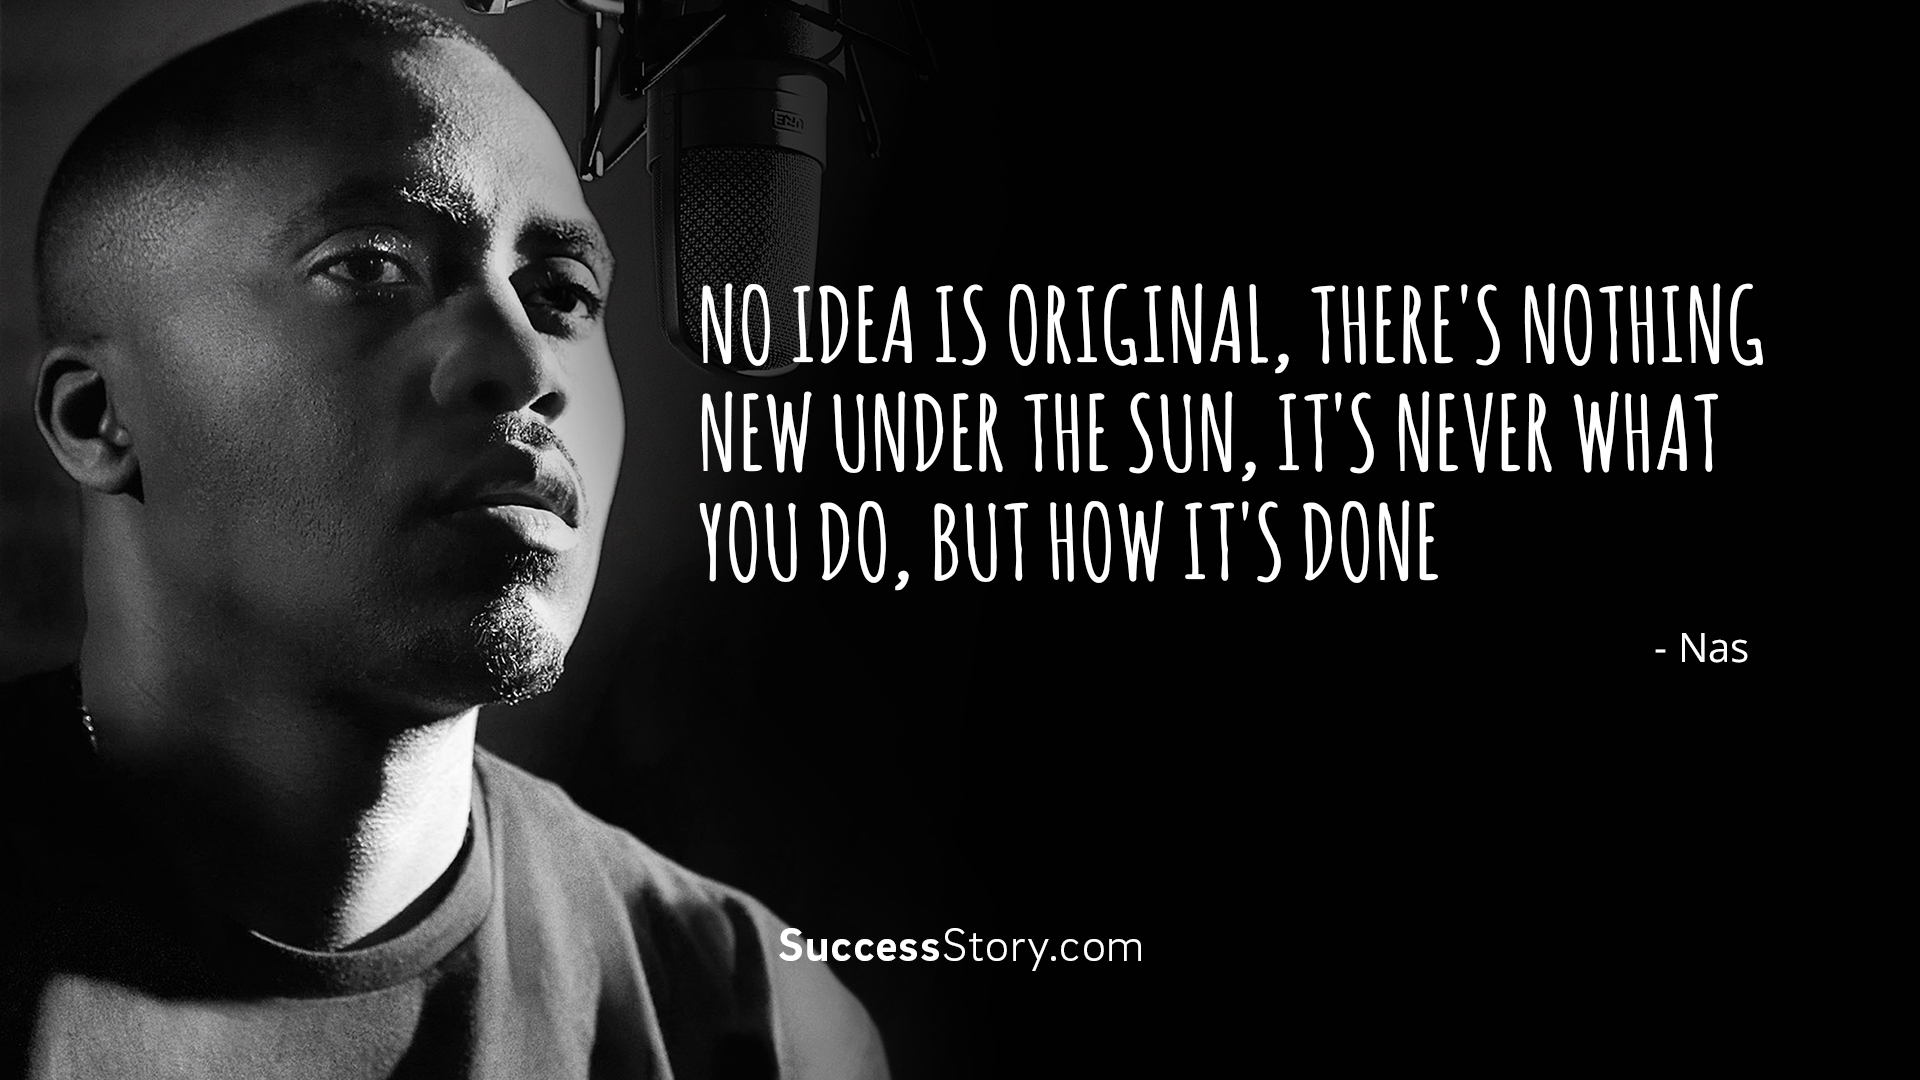 nas quotes from songs - photo #23